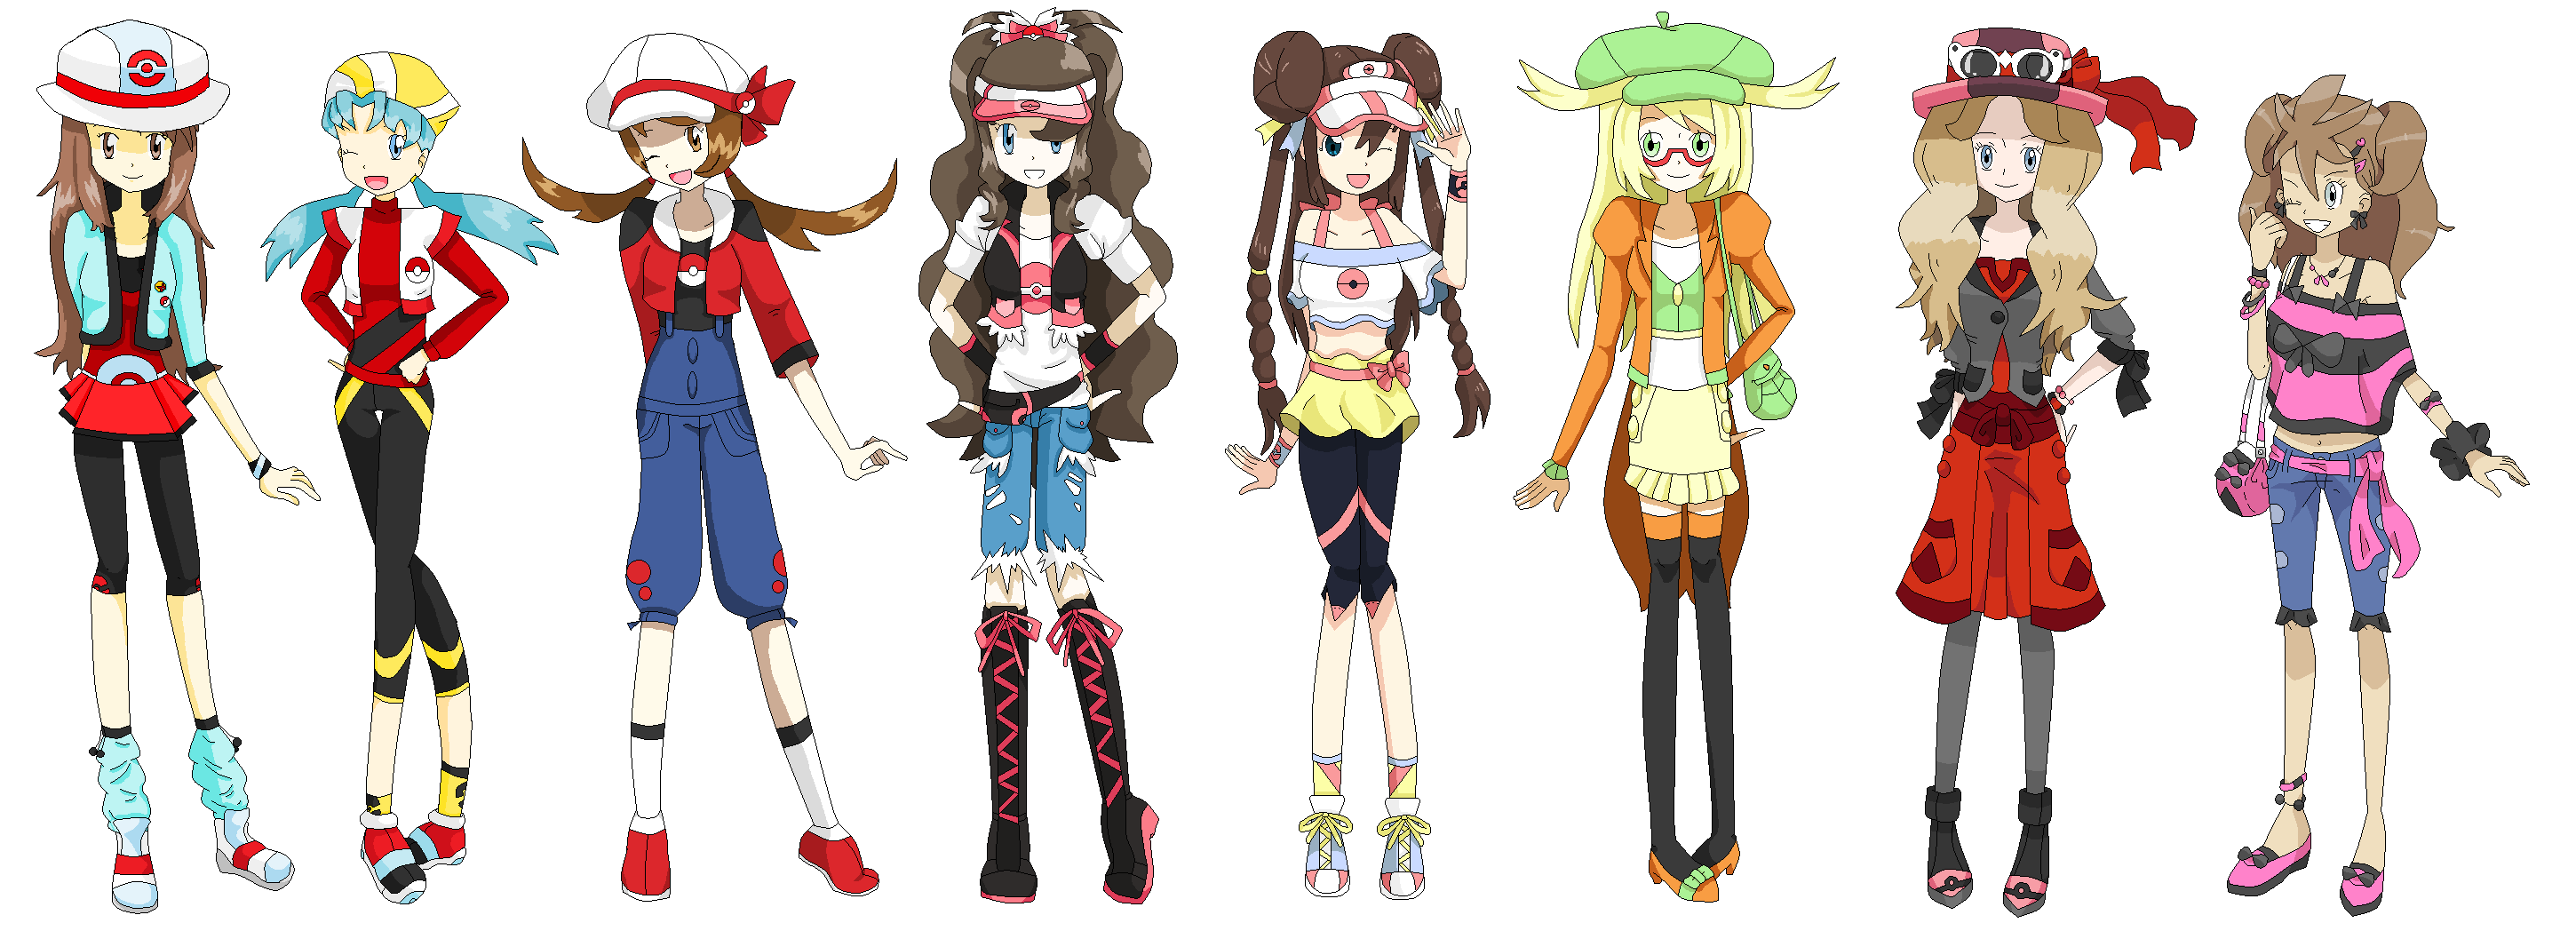 Hairstyles Xy : Pokemon Xy Different Hairstyles LONG HAIRSTYLES